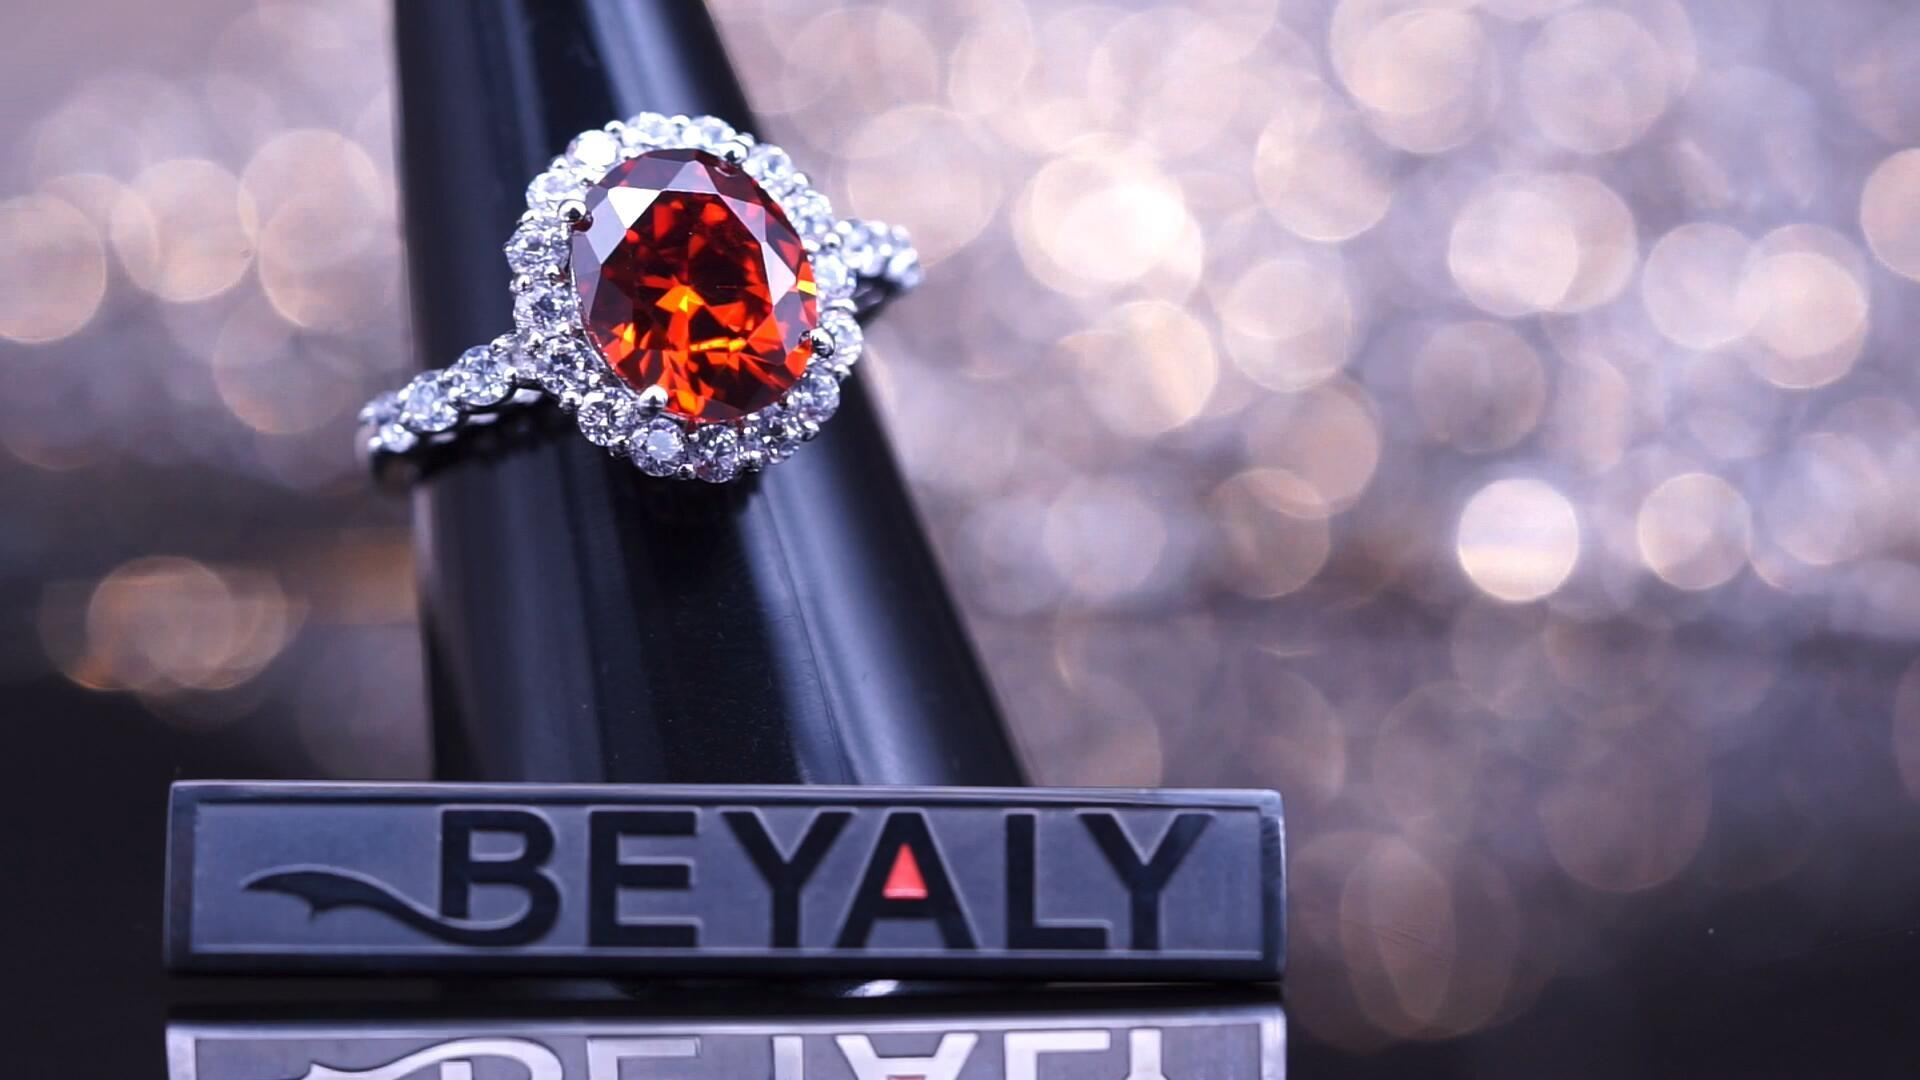 Beyaly Jewelry | Female 925 sterling silver red ruby CZ stone ring